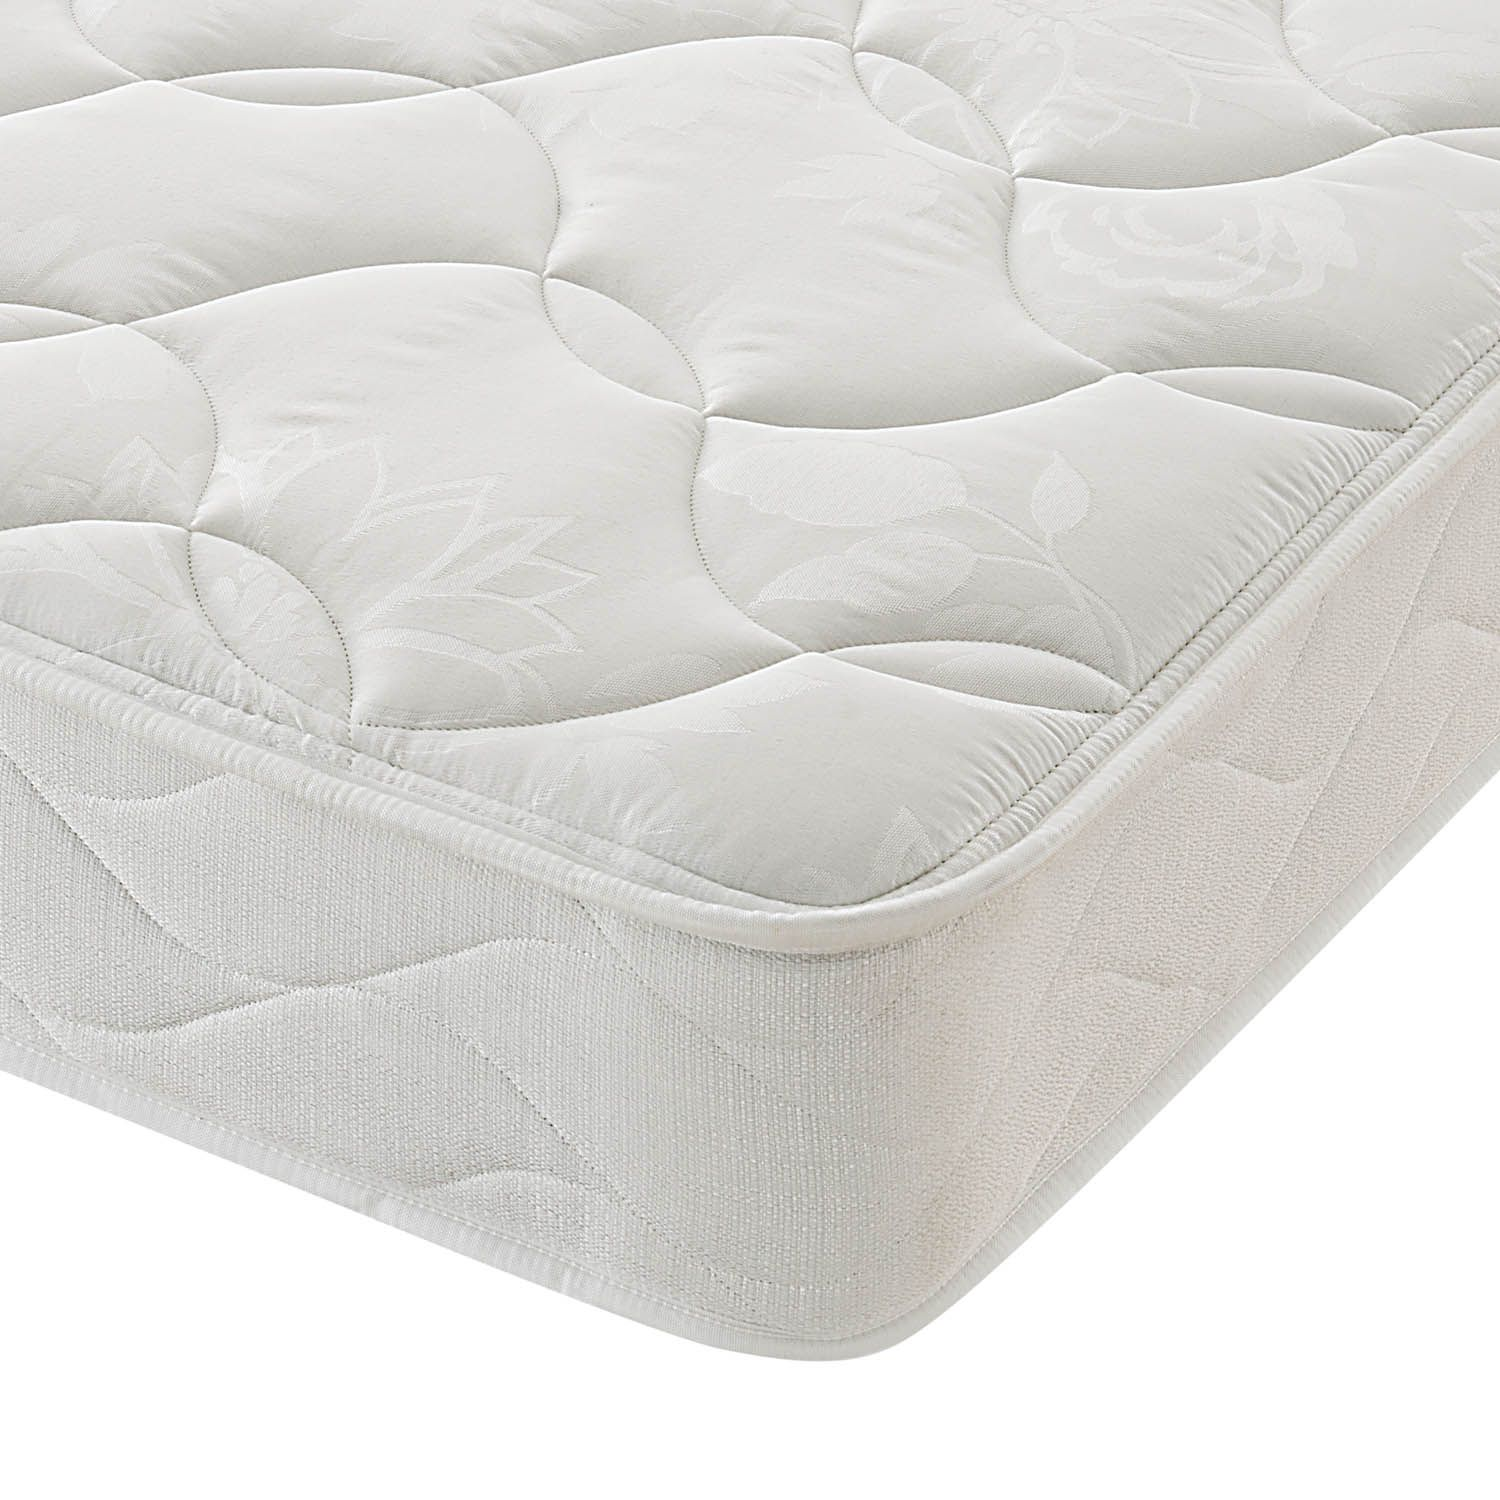 Silentnight Miracoil Classic Mattress Free Delivery Next Day